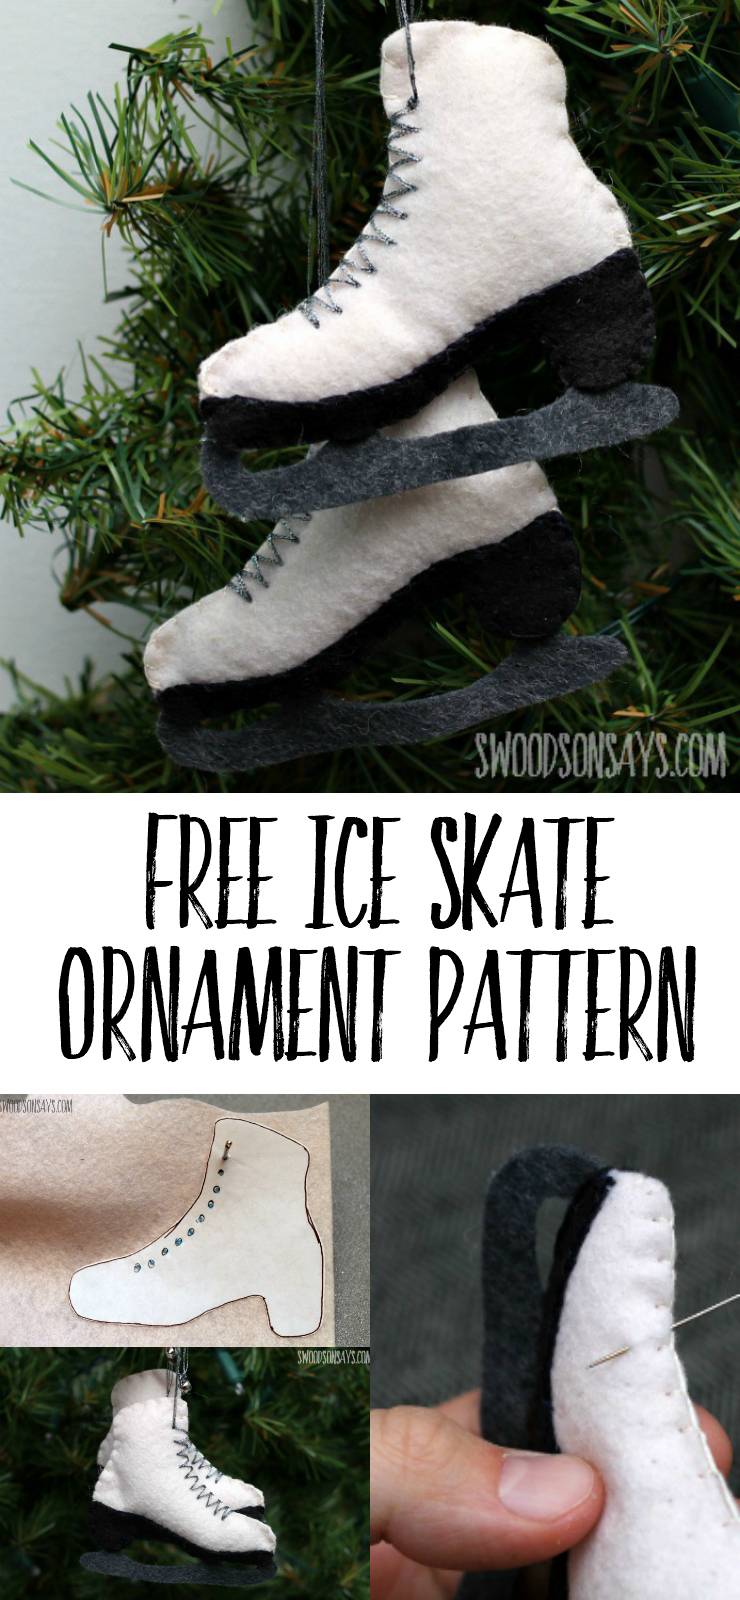 Free Felt Ice Skate Ornament Pattern - sew this stuffed ice skate sewing pattern and hang it from your Christmas tree! Make a super cute DIY ice skate Christmas ornament with this easy tutorial and free PDF pattern. #ornament #Christmas #felt #diyornament #christmascrafts